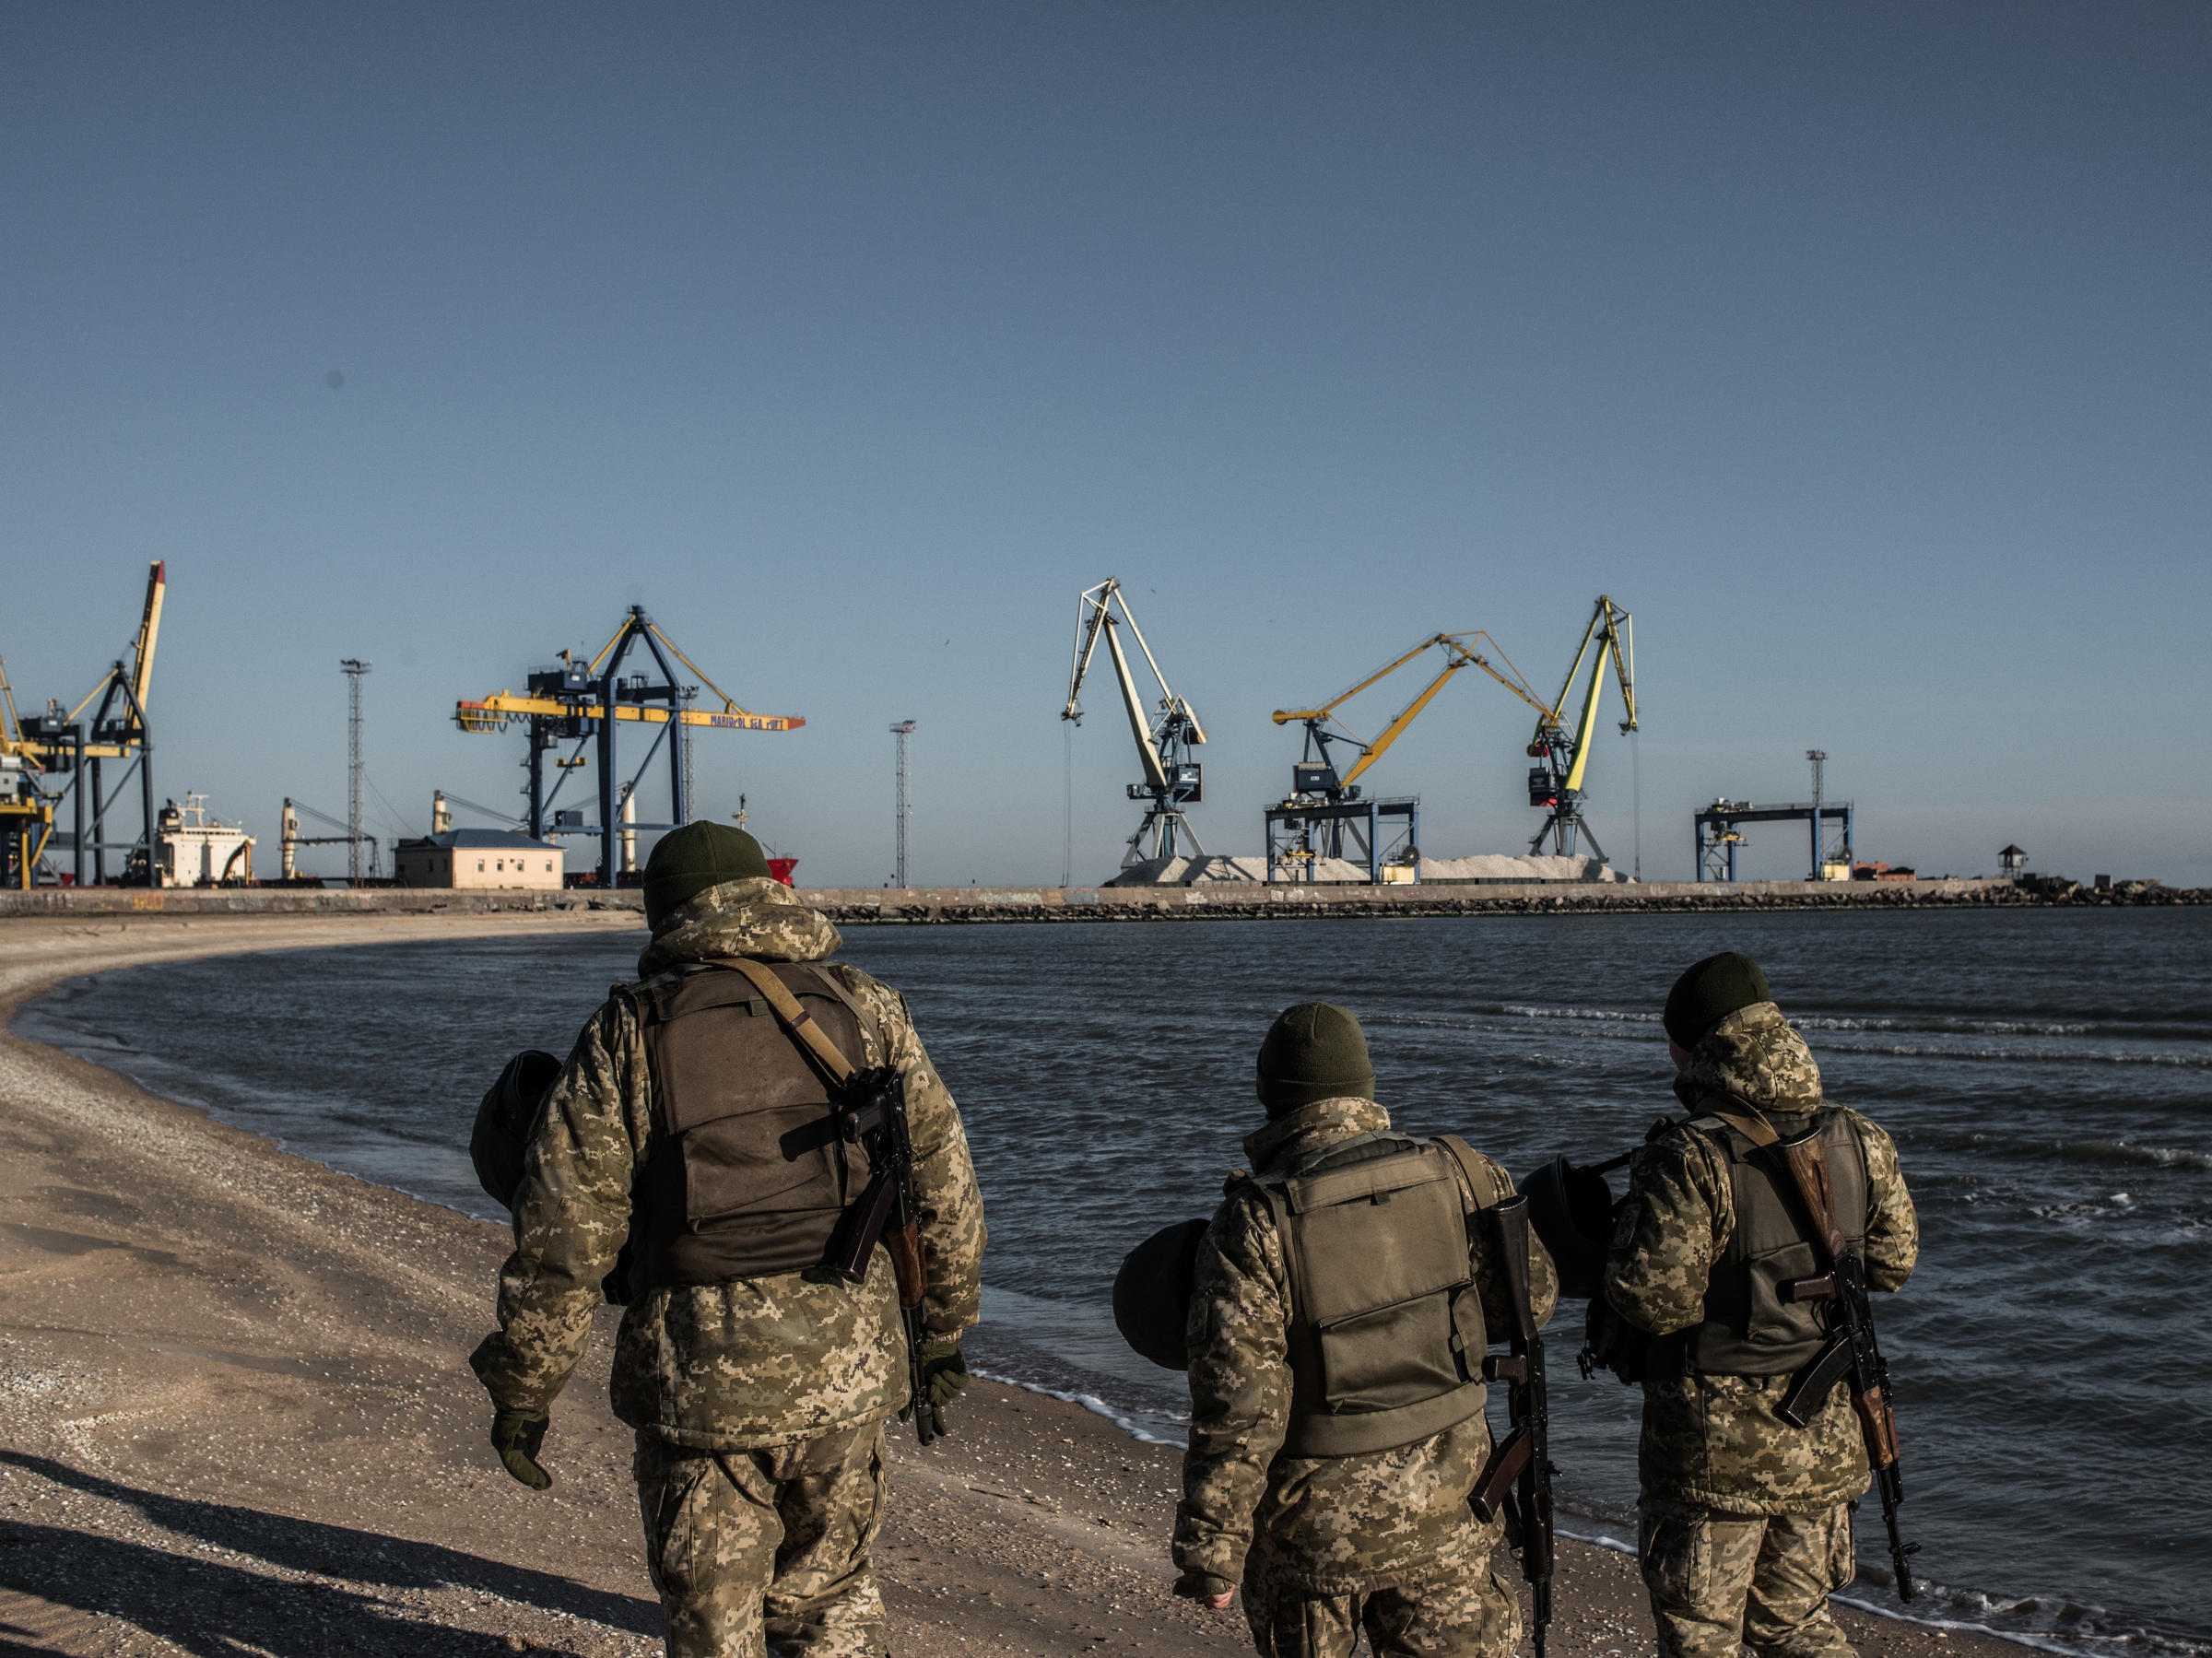 Ukraine refuses entry to Russian men as fear of invasion grows